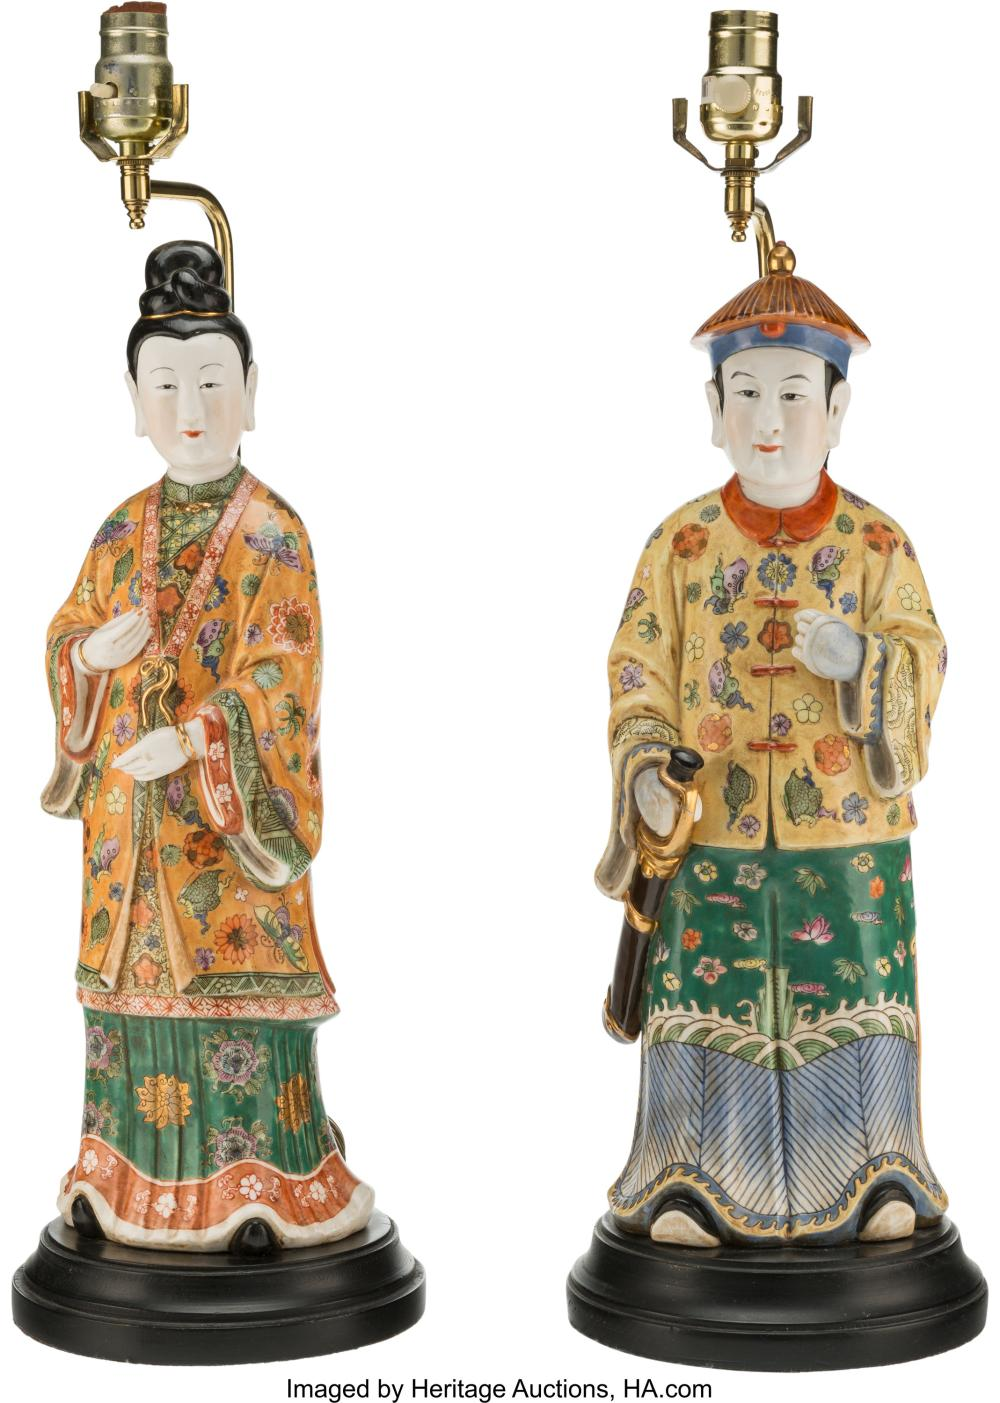 Lot 21294: A Pair of Chinese Partial Gilt Porcelain Figural Lamps, 20th century 24-1/2 x 7-